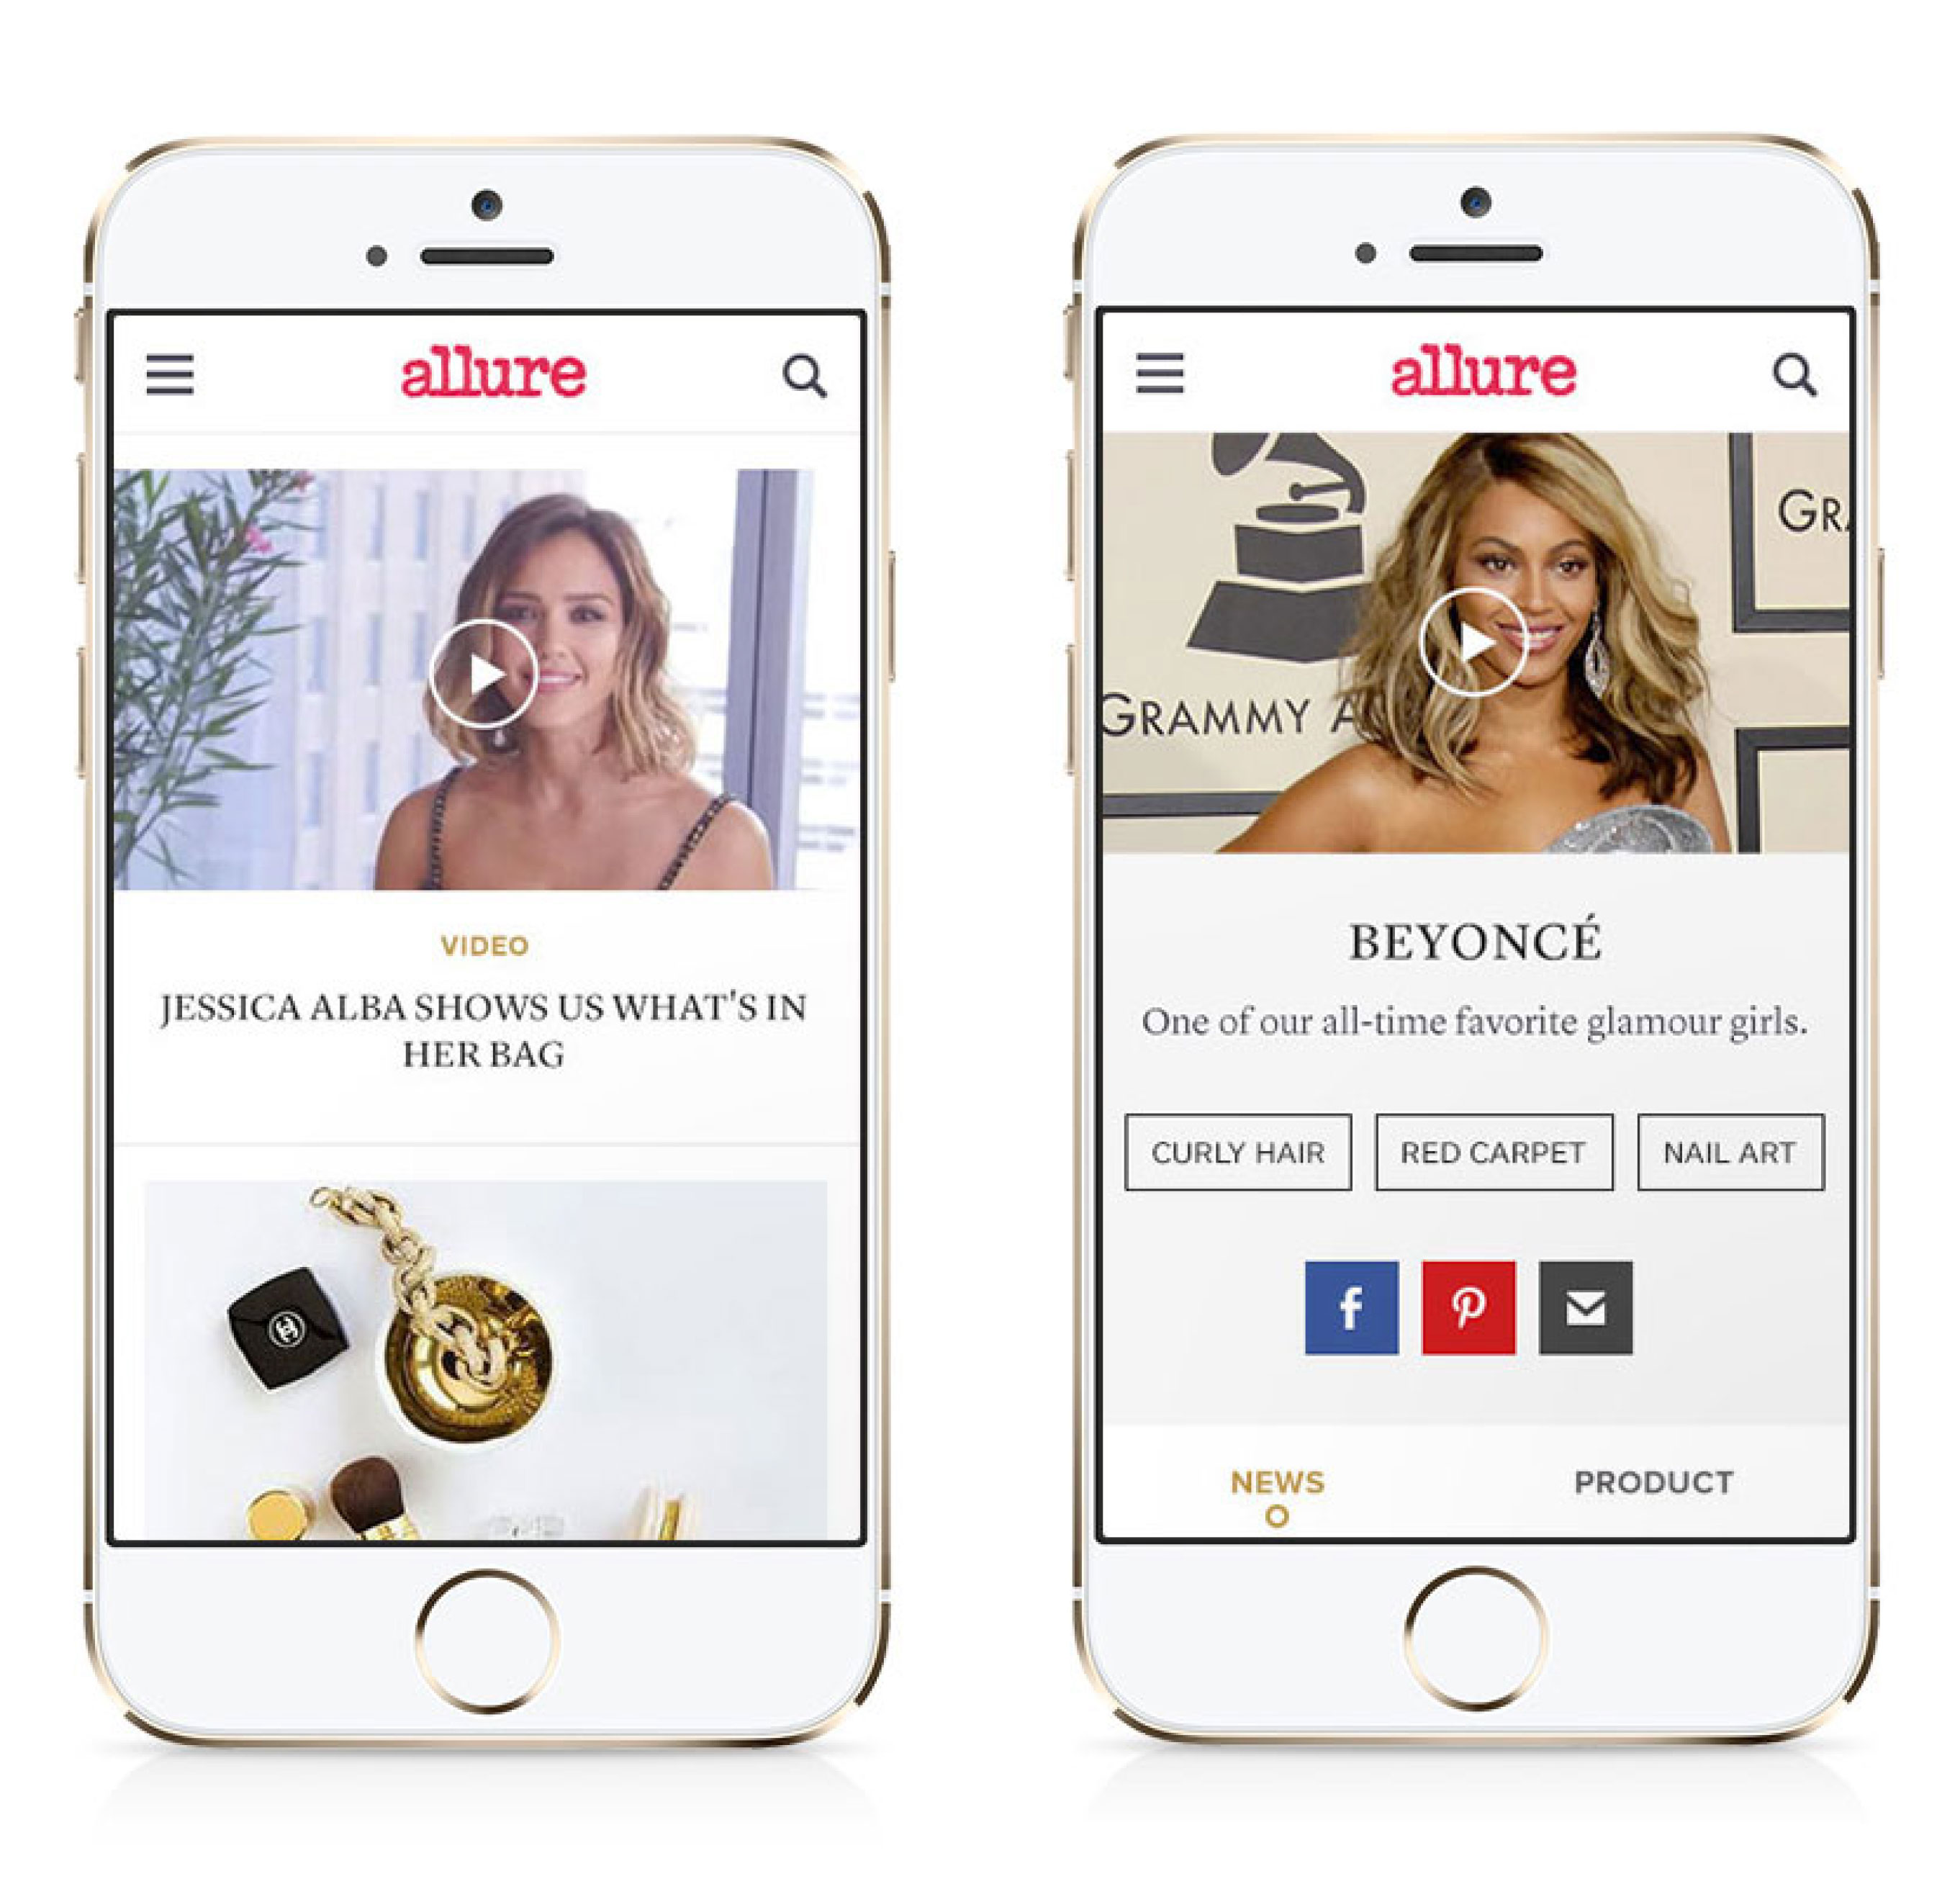 allure_new_product_6